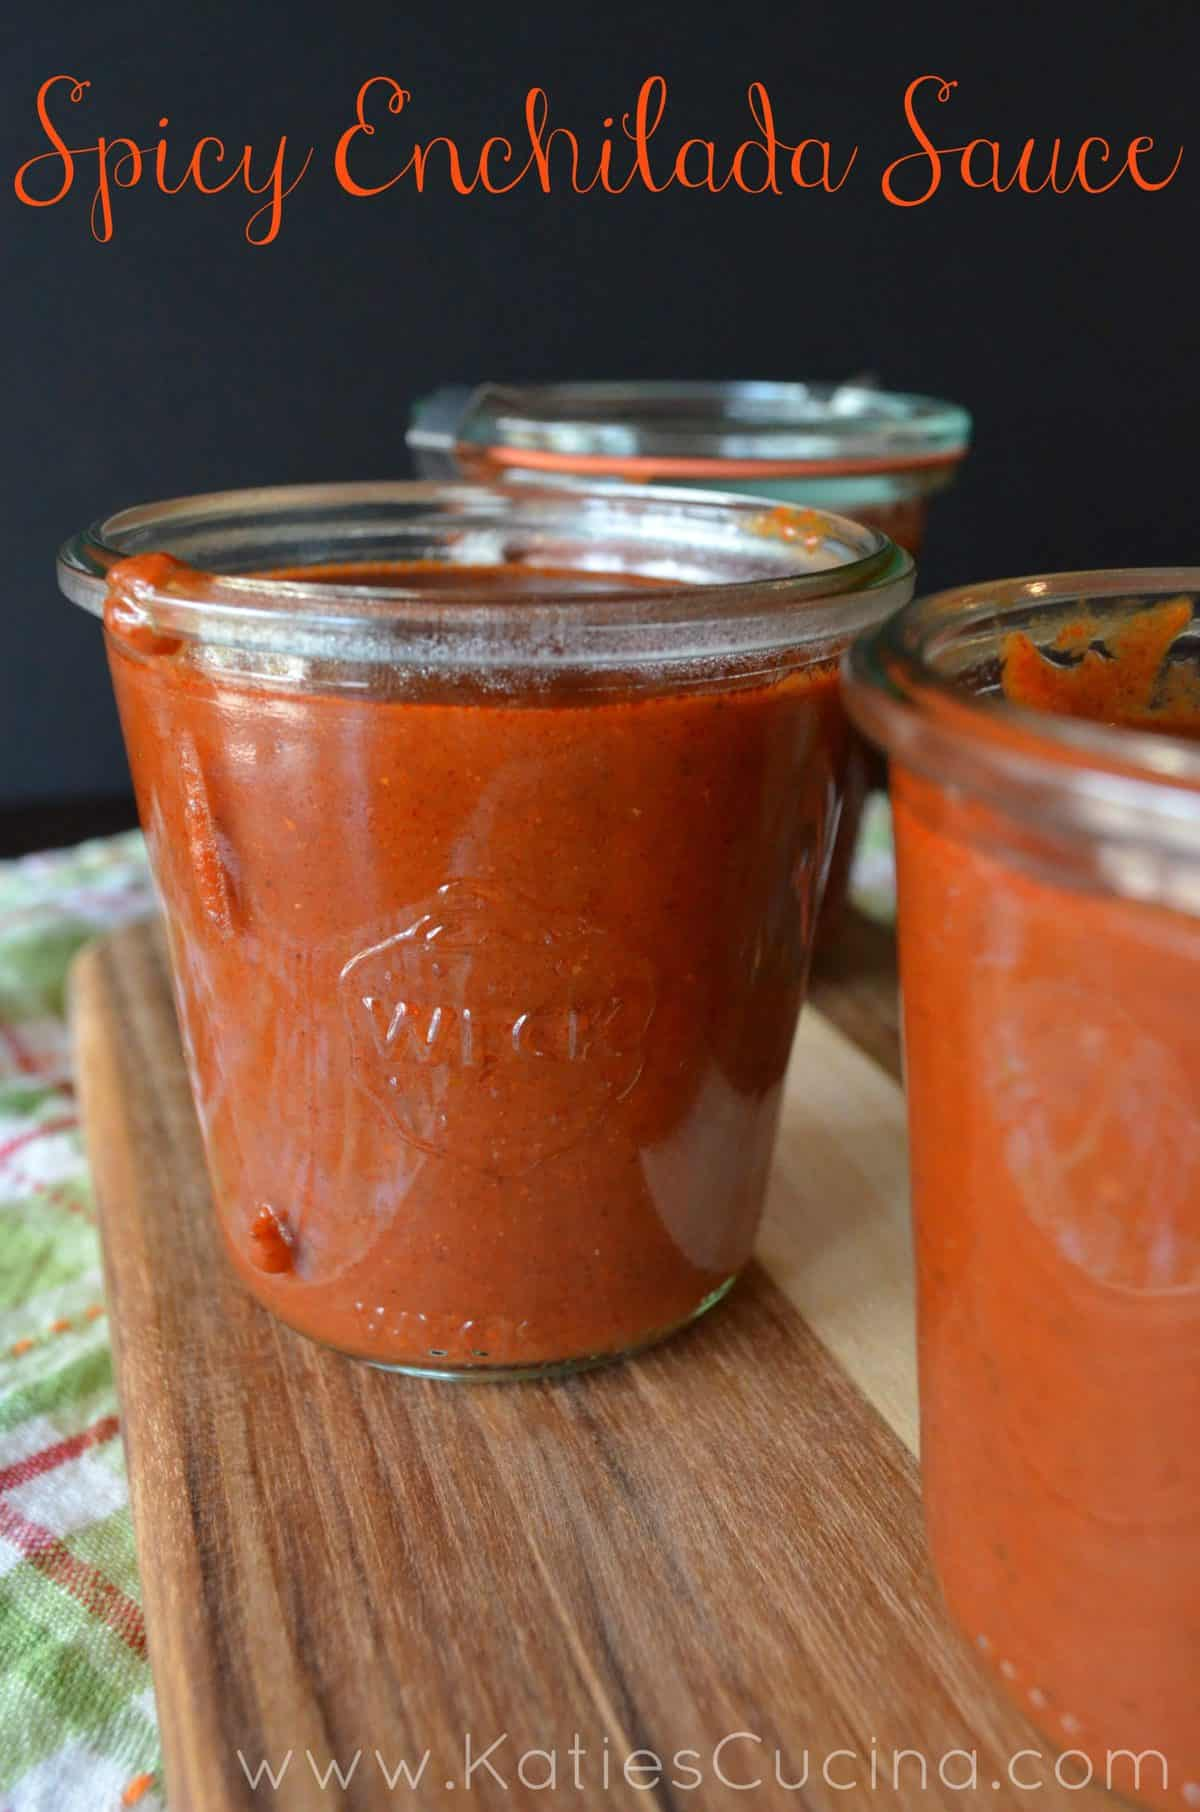 Spicy Enchilada Sauce - easy to make at home and only takes 15 minutes!  via KatiesCucina.com